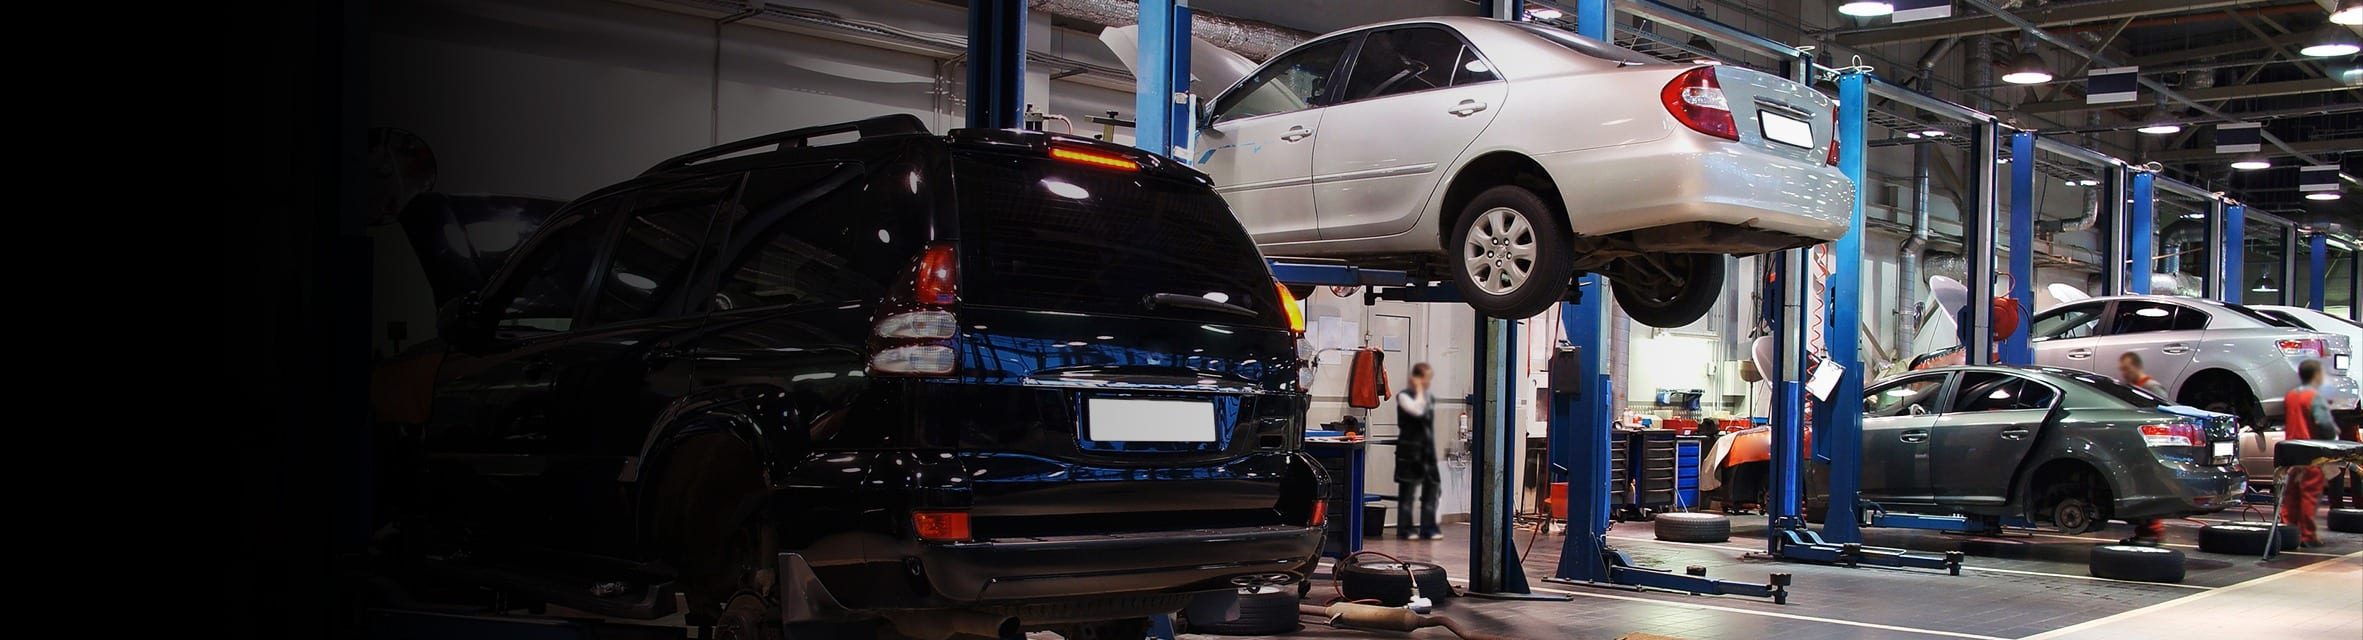 Automotive Maintenance Equipment